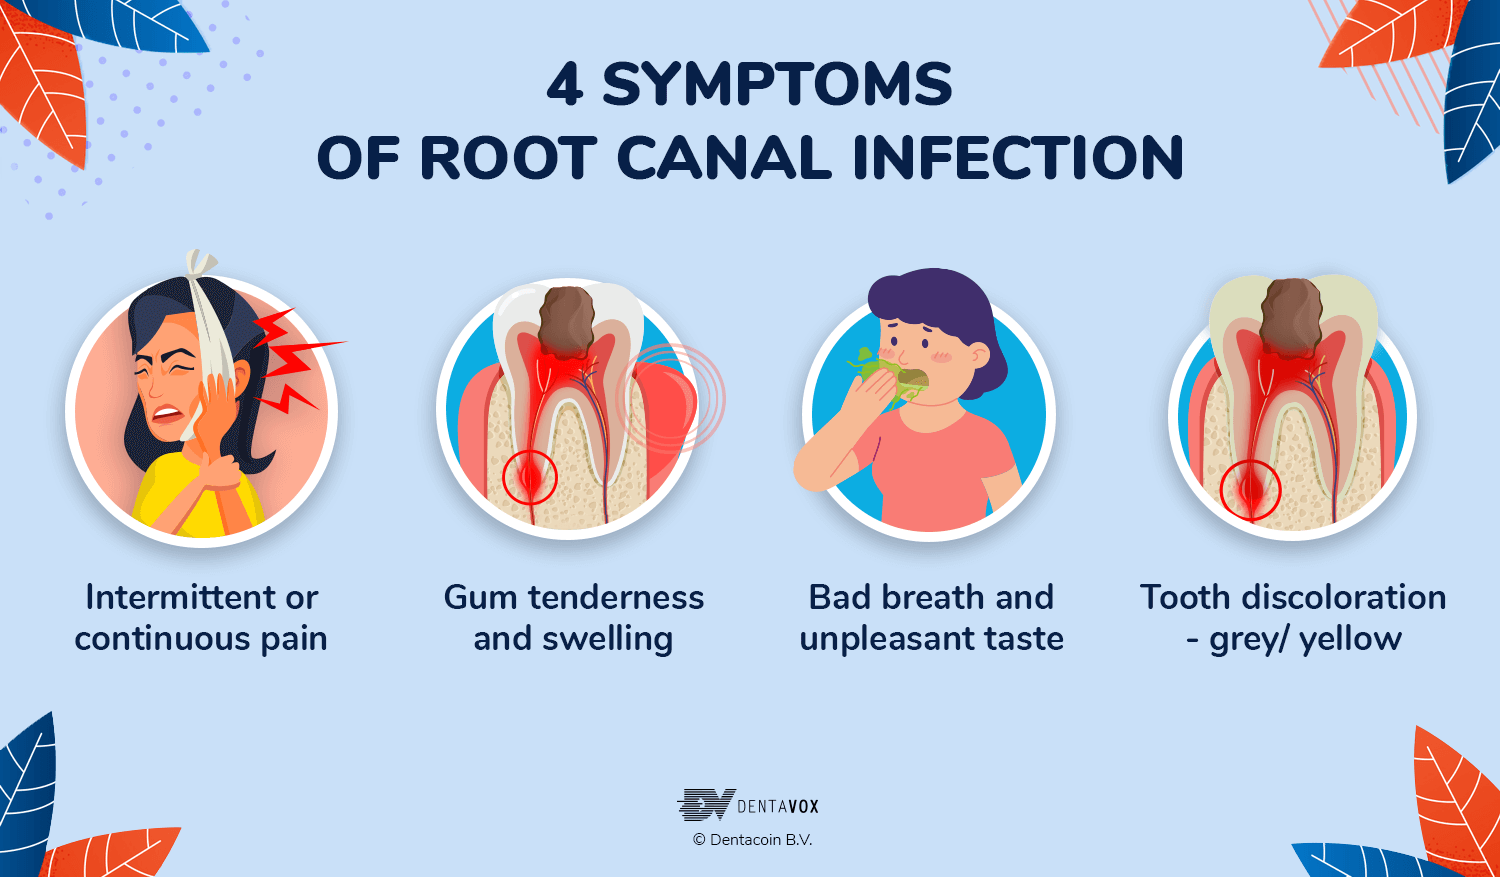 root canal infection symptoms dentavox blog